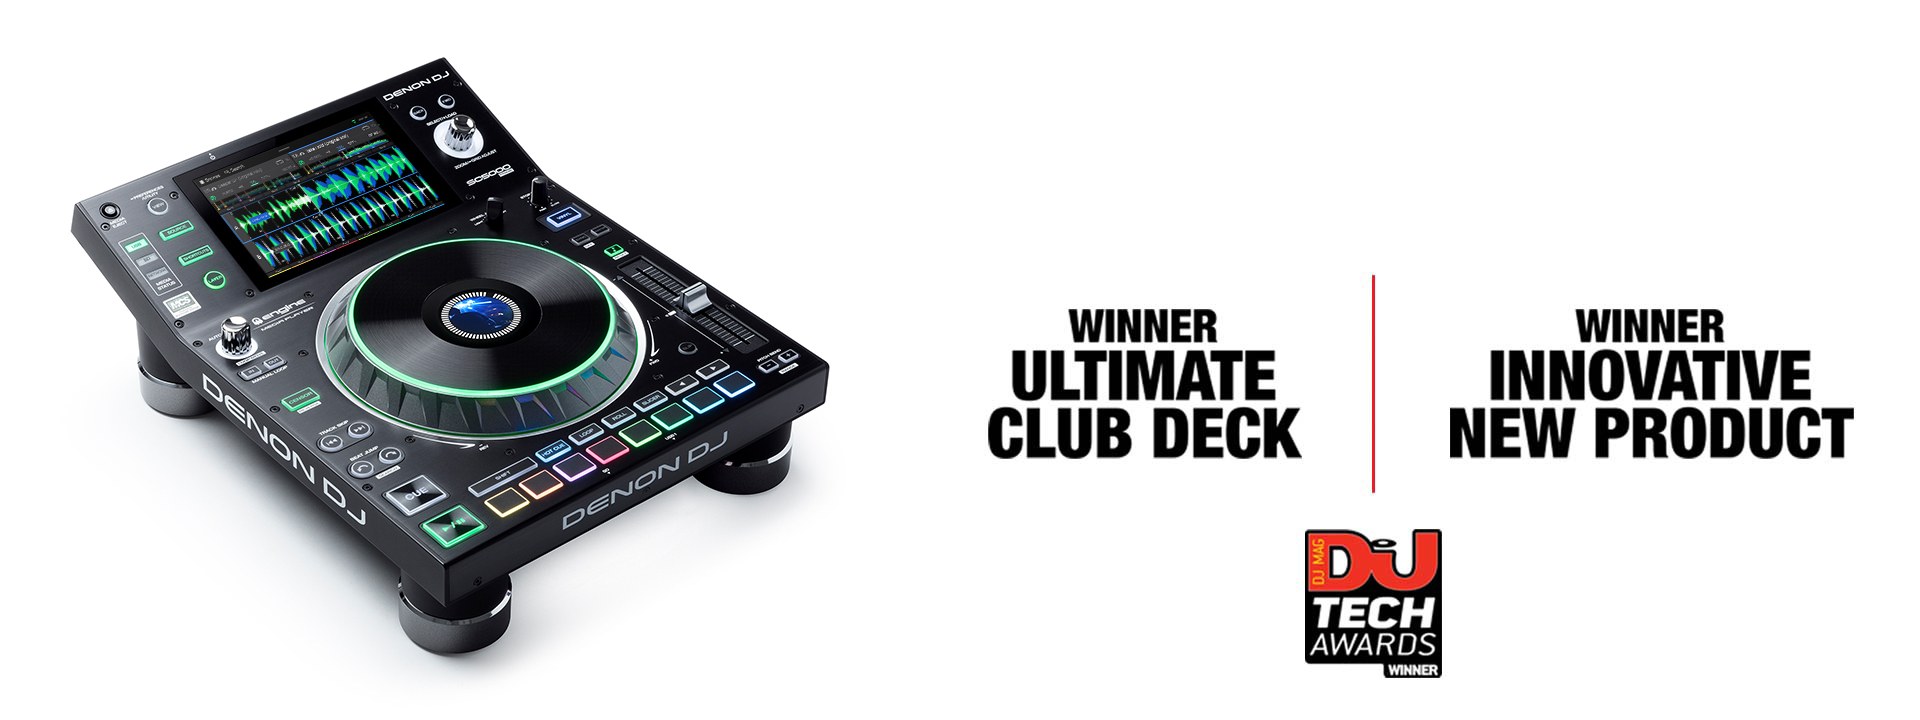 SC5000 PRIME - winner of 'Ultimate Club Deck' and 'Innovative New Product' in the DJ Mag Tech Awards